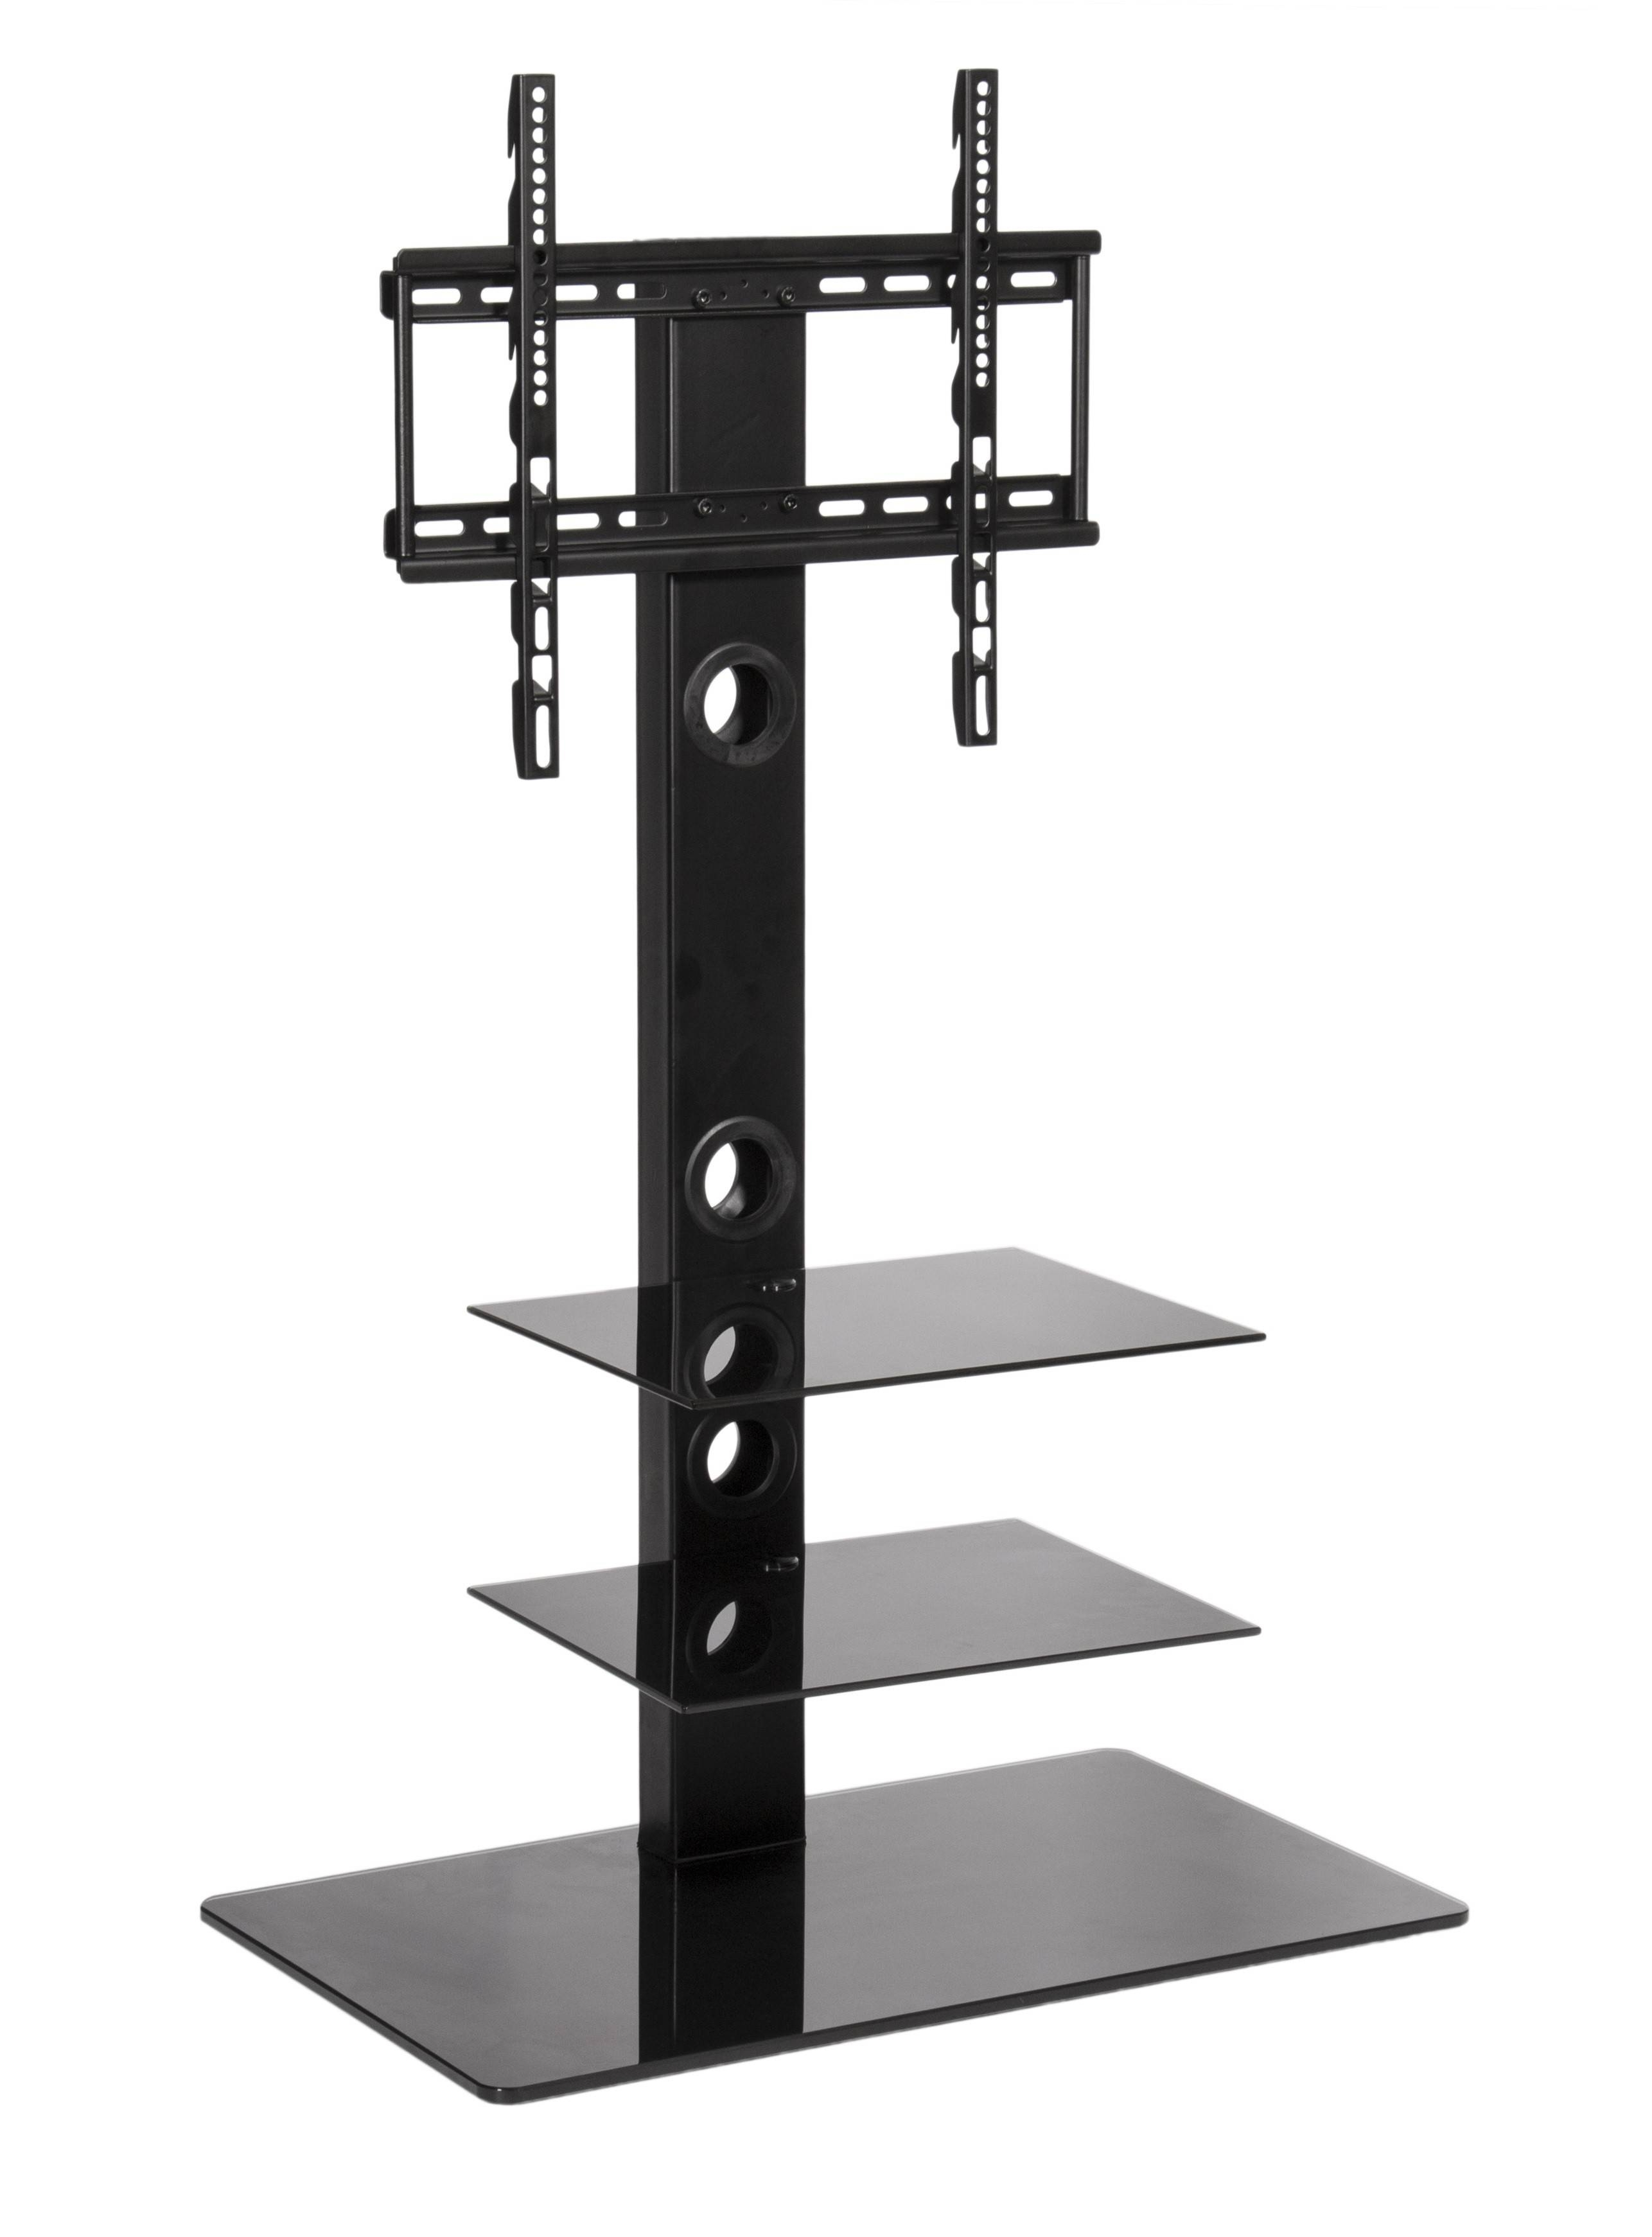 Black Glass Cantilever Tv Stand | Mmt-Cbm3 for Cantilever Tv Stands (Image 8 of 15)